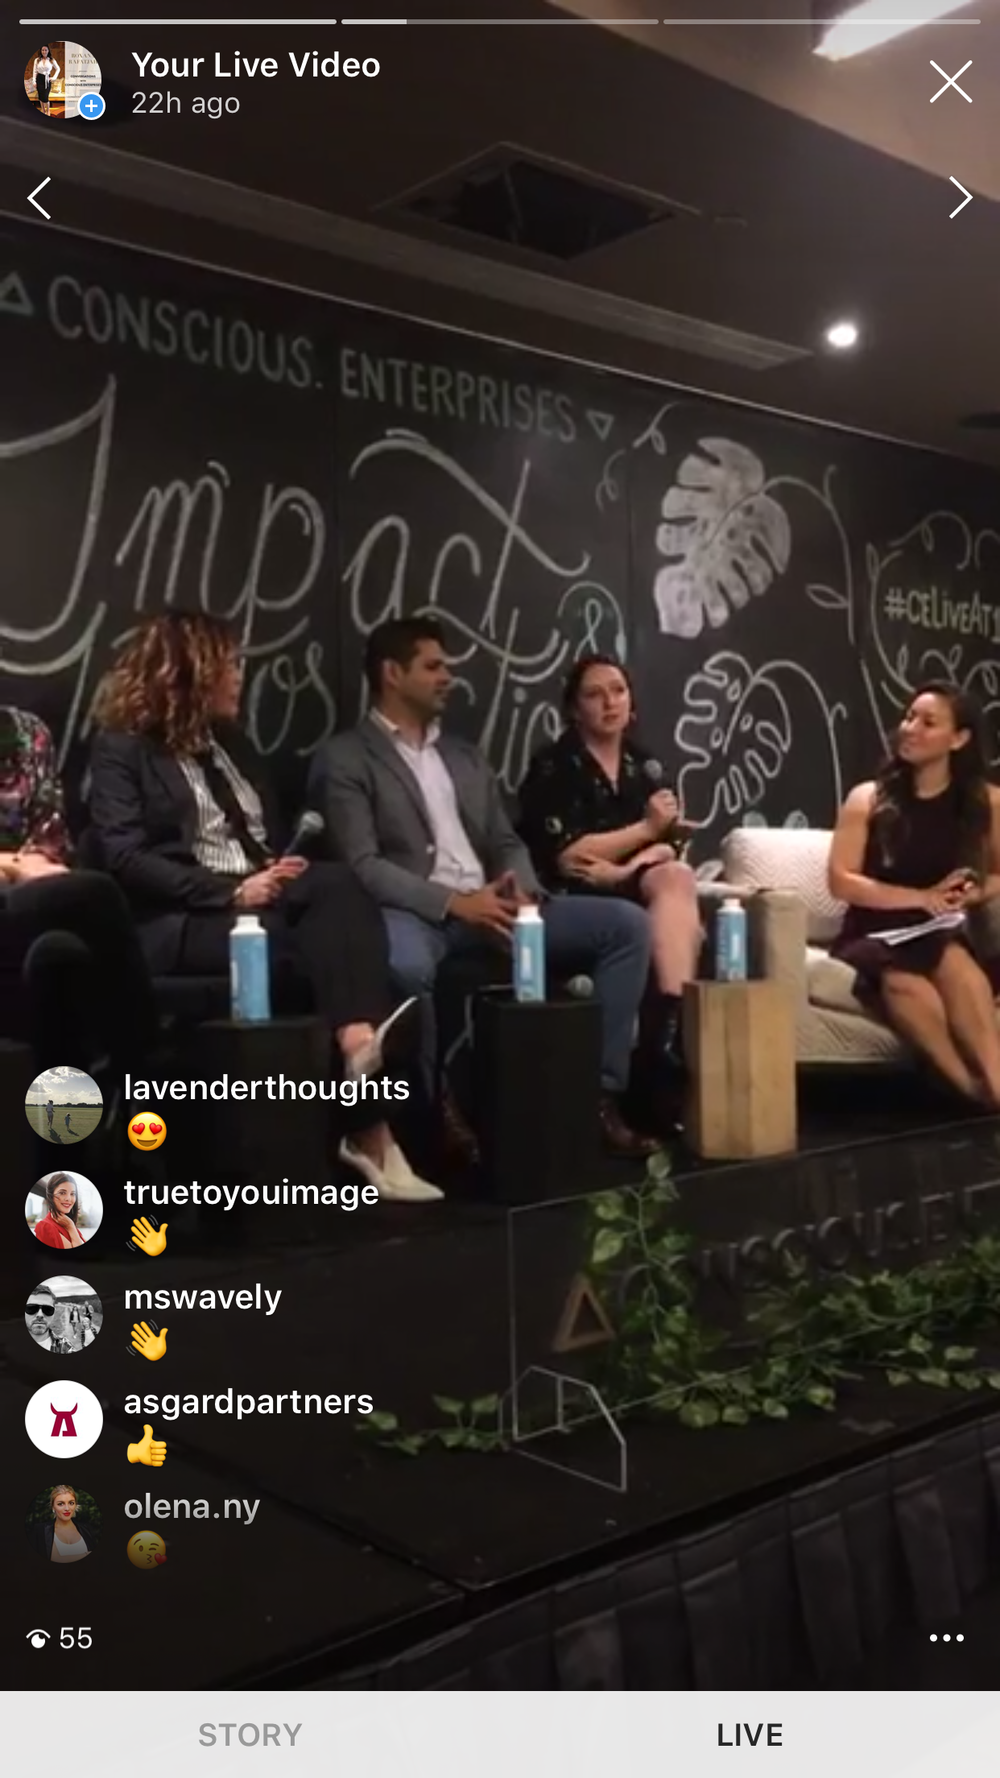 Instagram Live Feed of Conscious Enterprises LIVE @ 1 Hotel